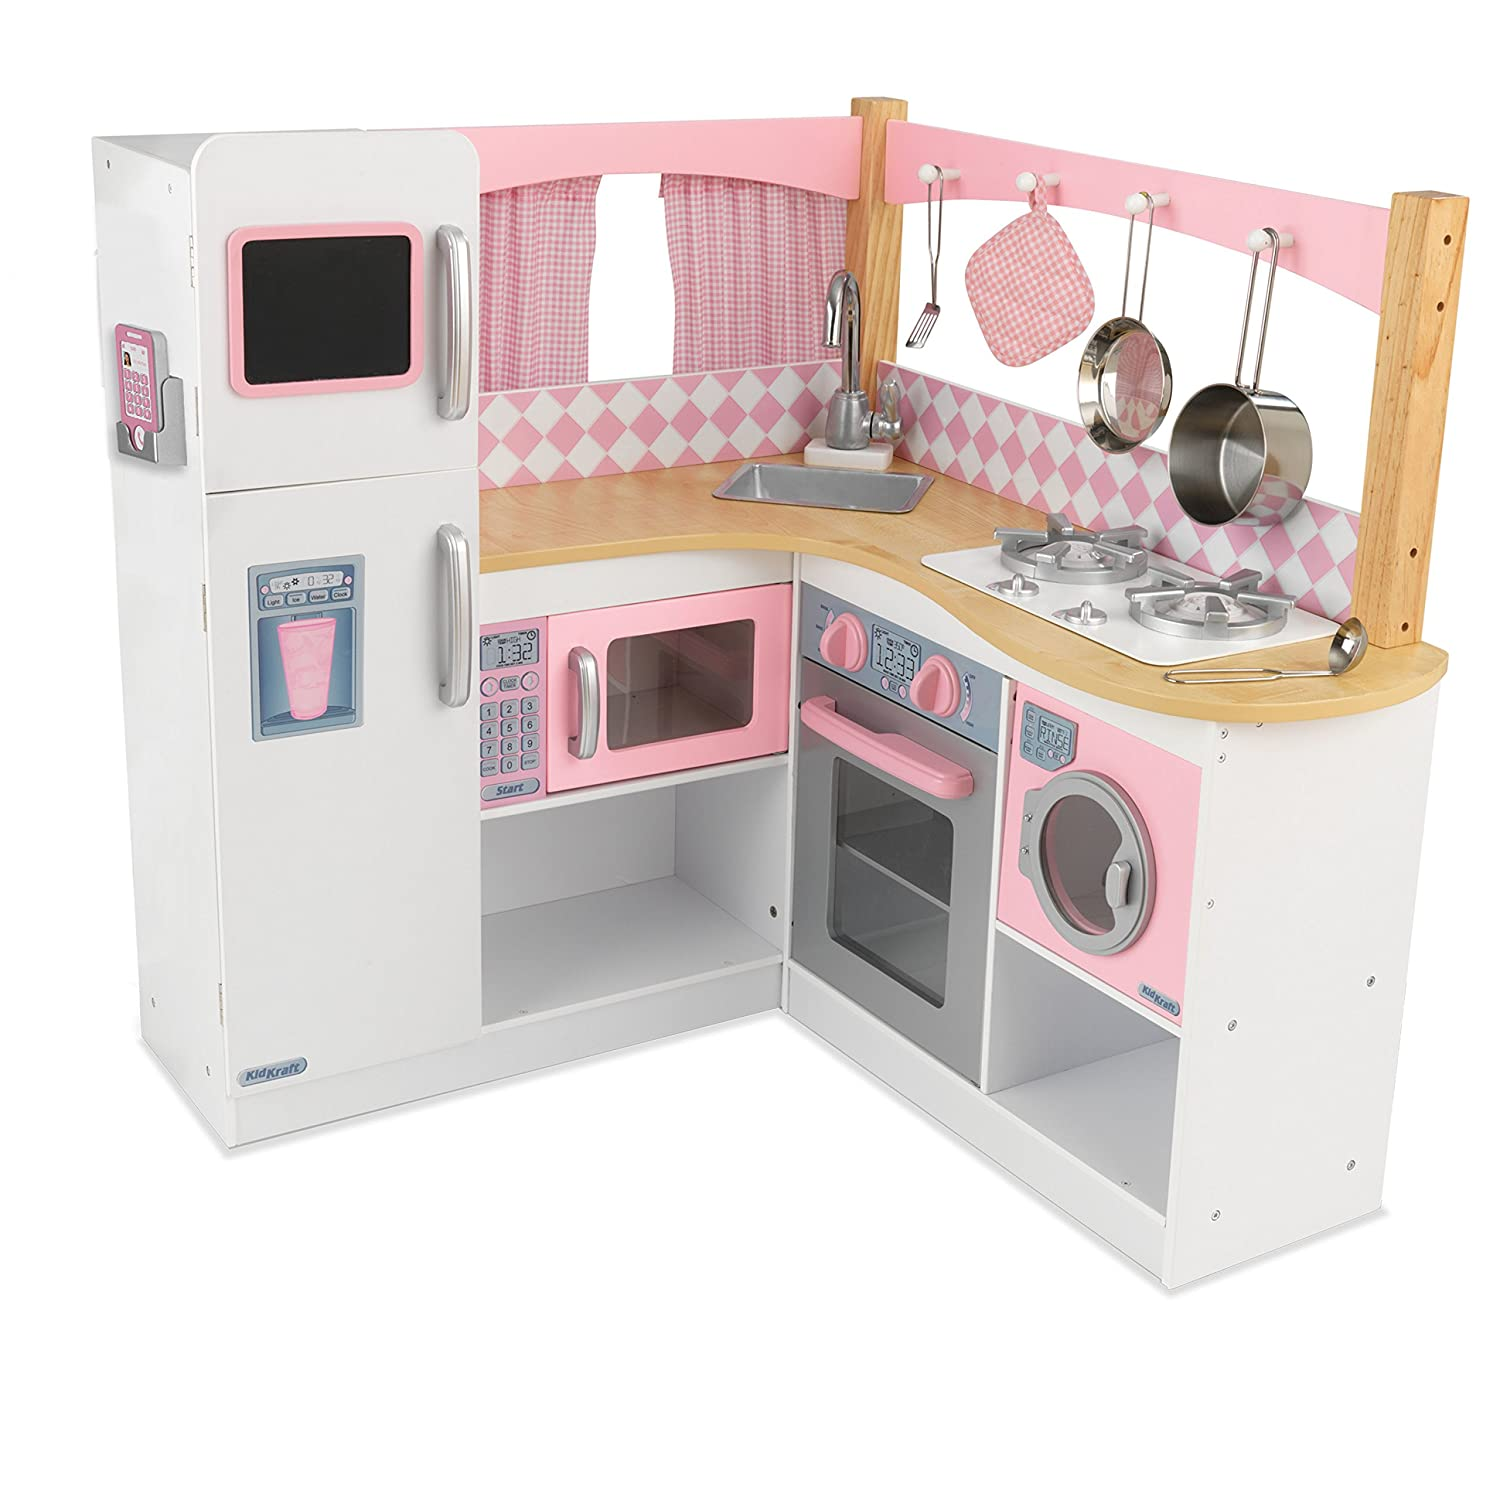 1e2faa8bc360 KidKraft 53185 Grand Gourmet Corner Wooden Pretend Play Toy Kitchen for  Kids with role play accessories included - Pink & White: Kidkraft:  Amazon.co.uk: ...